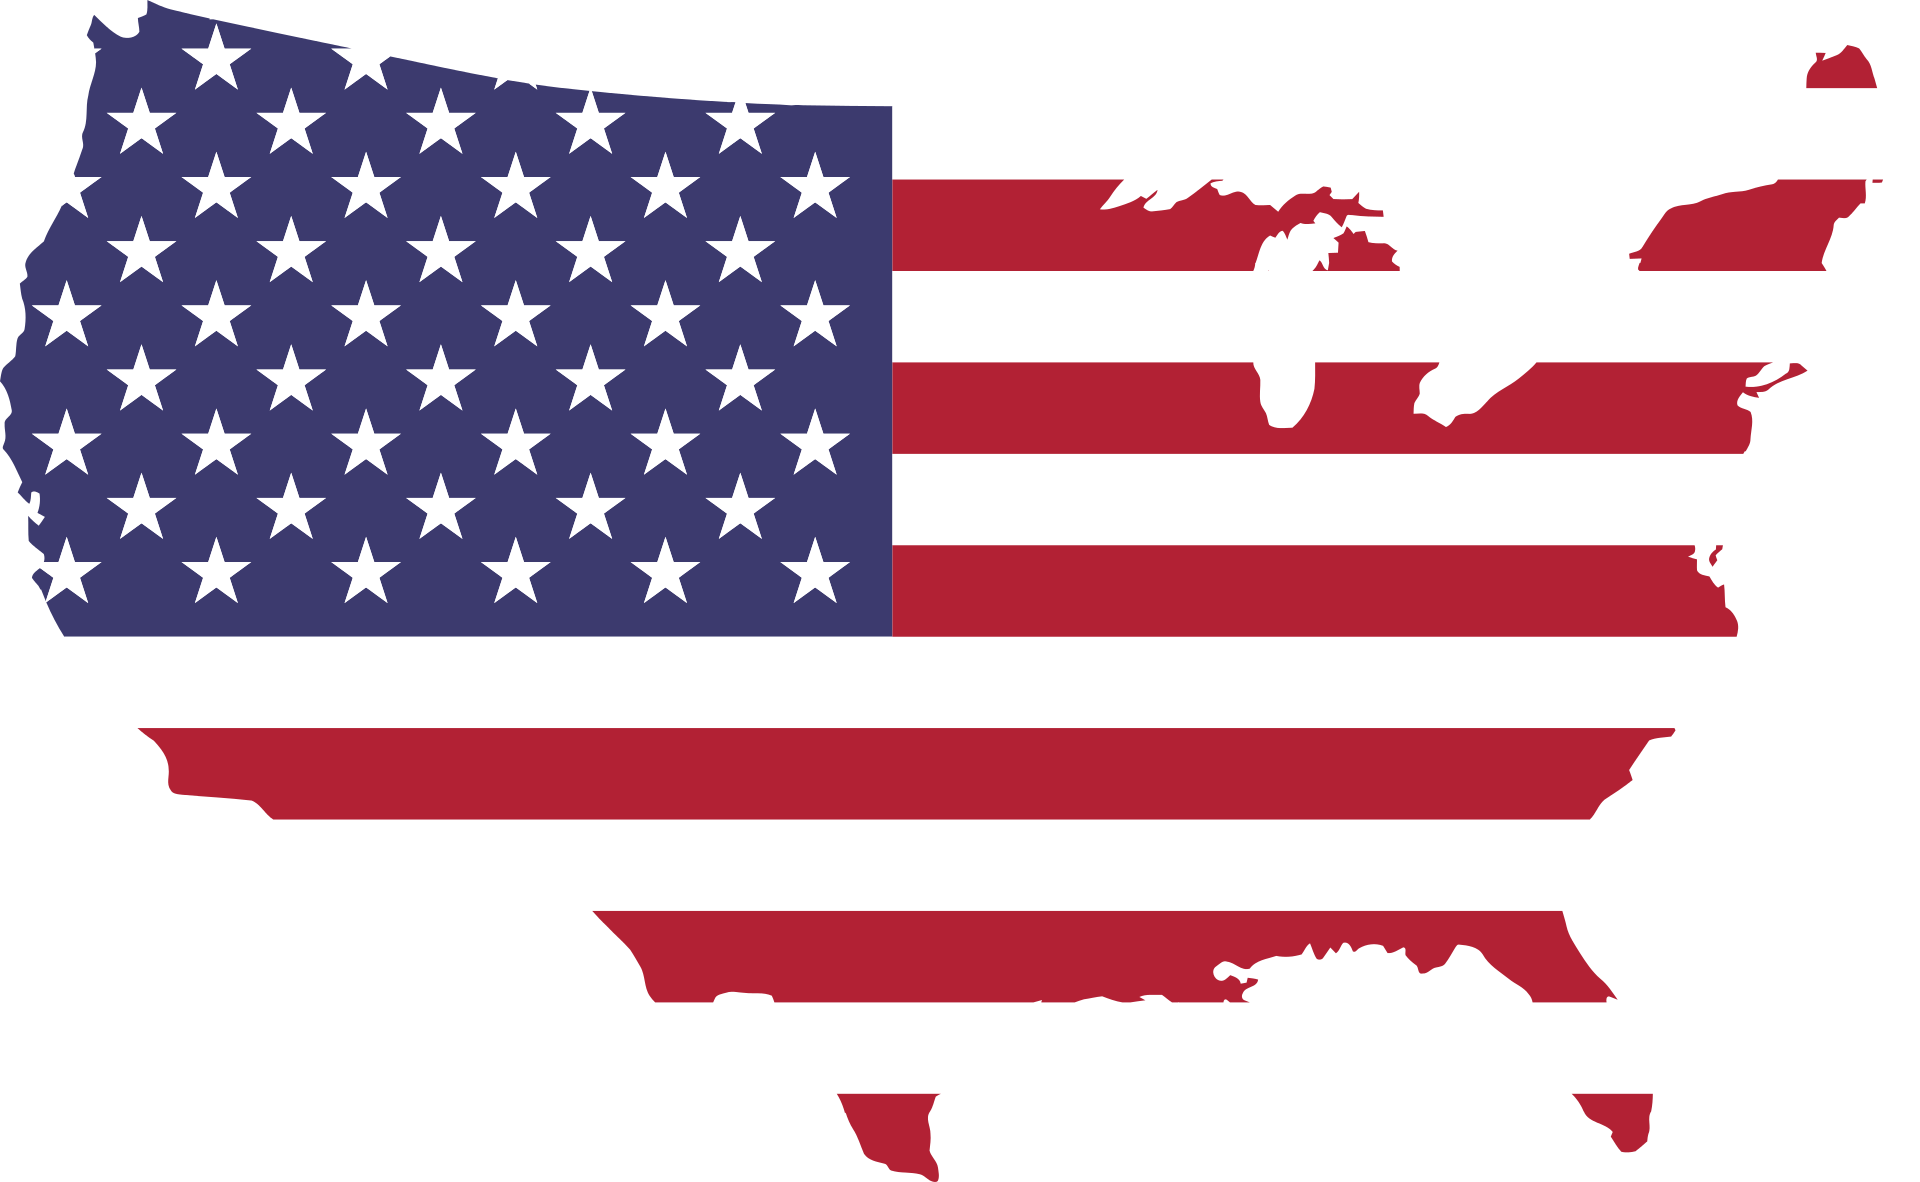 american flag in usa map shape